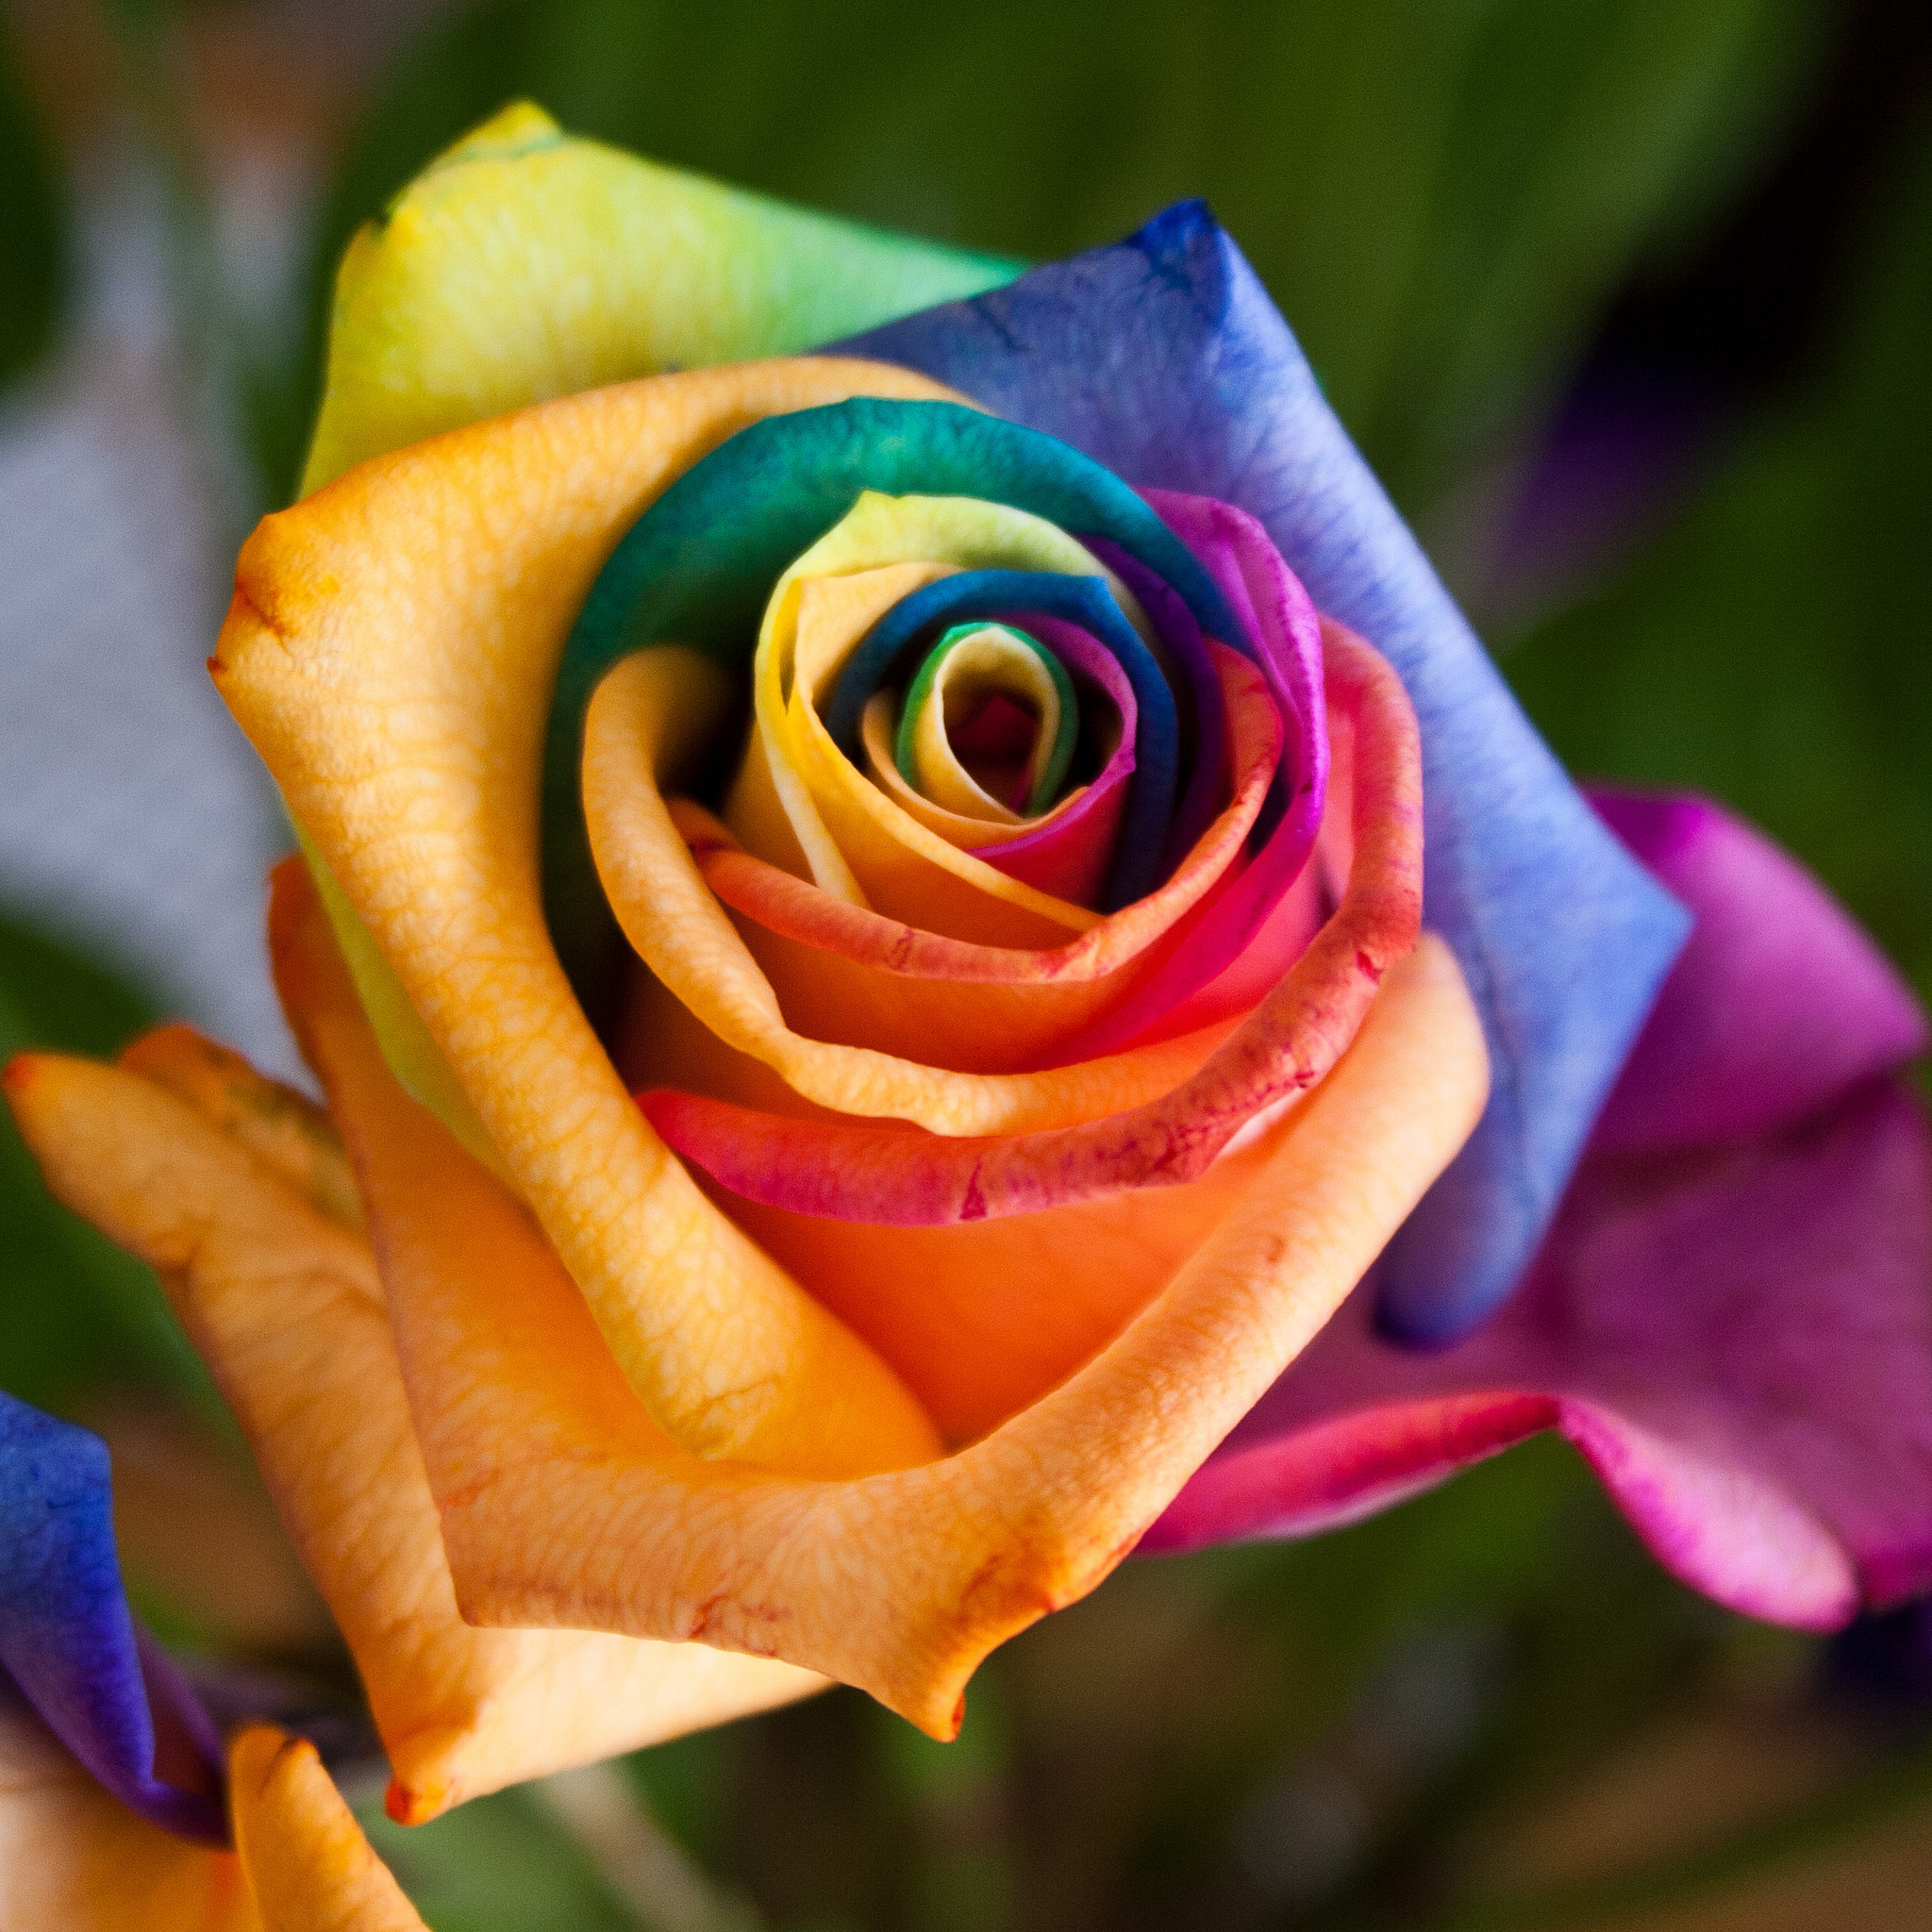 Rainbow Rose by Sam Judson on Flickr